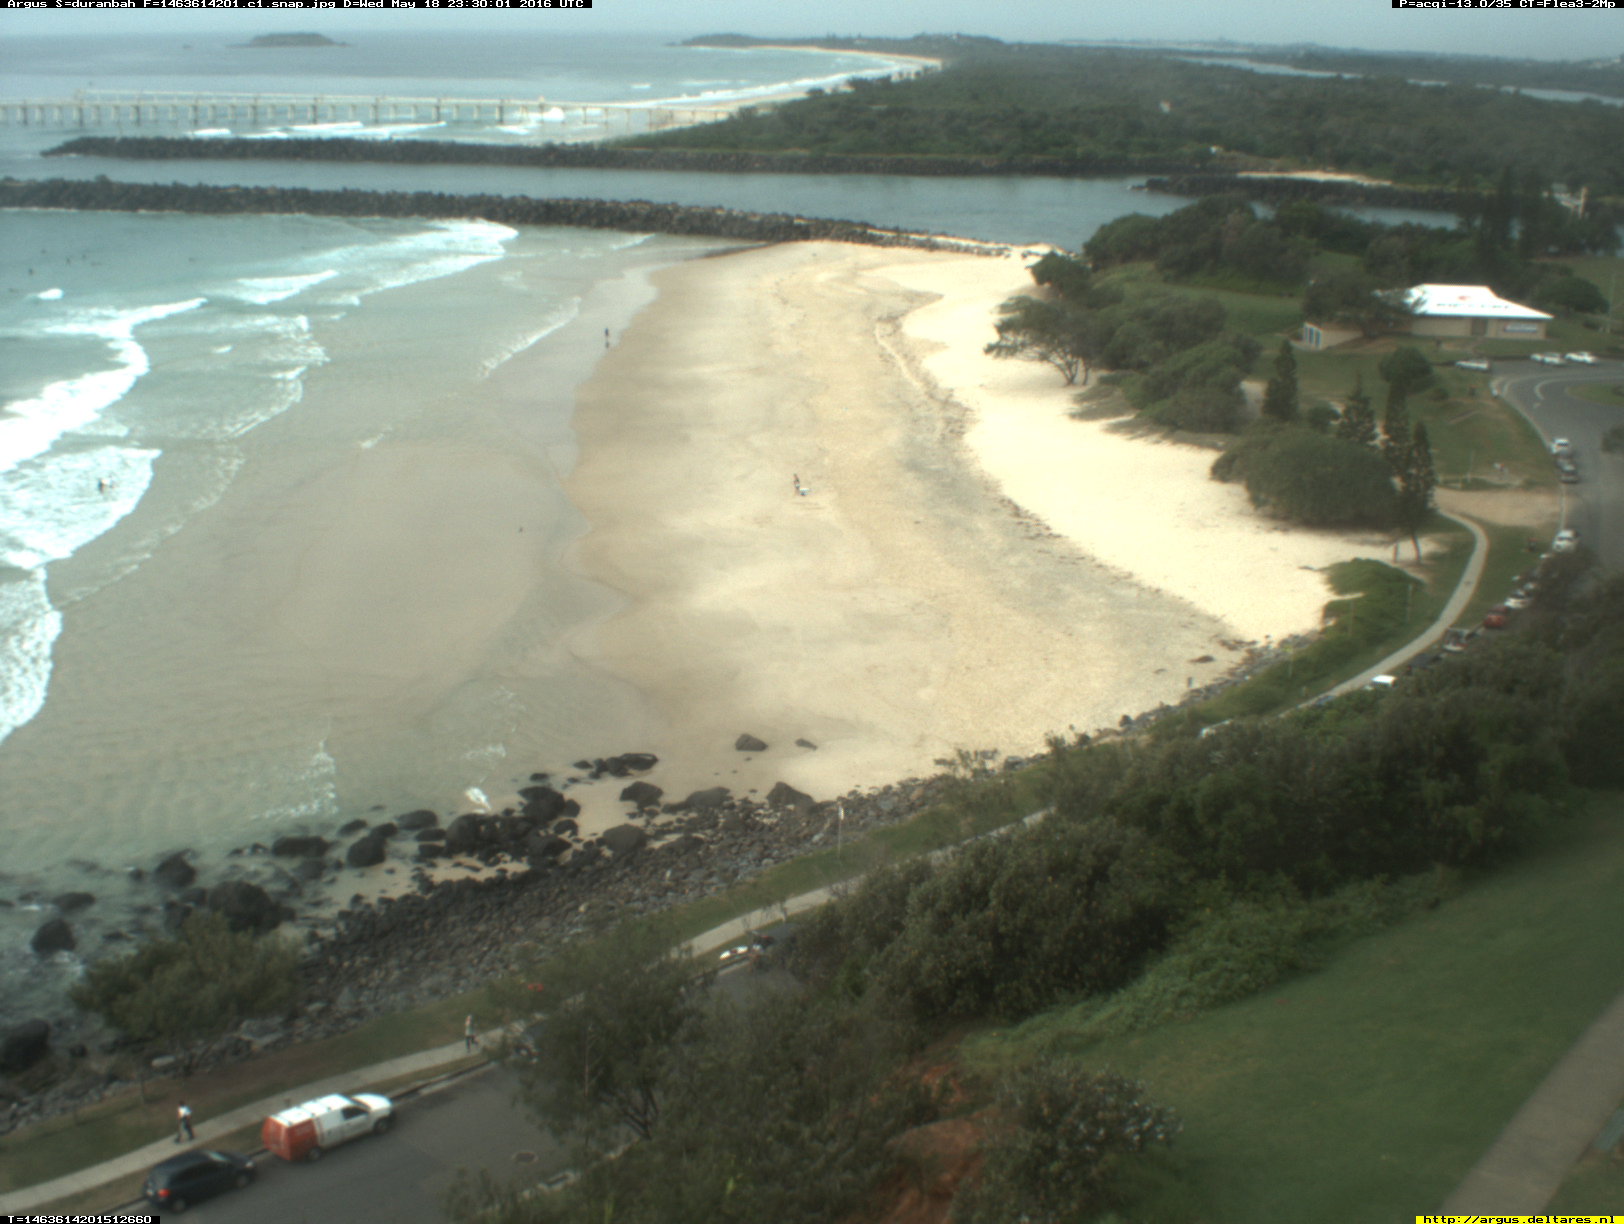 Gold Coast webcam - Duranbah Beach 1 webcam, Queensland, Gold Coast